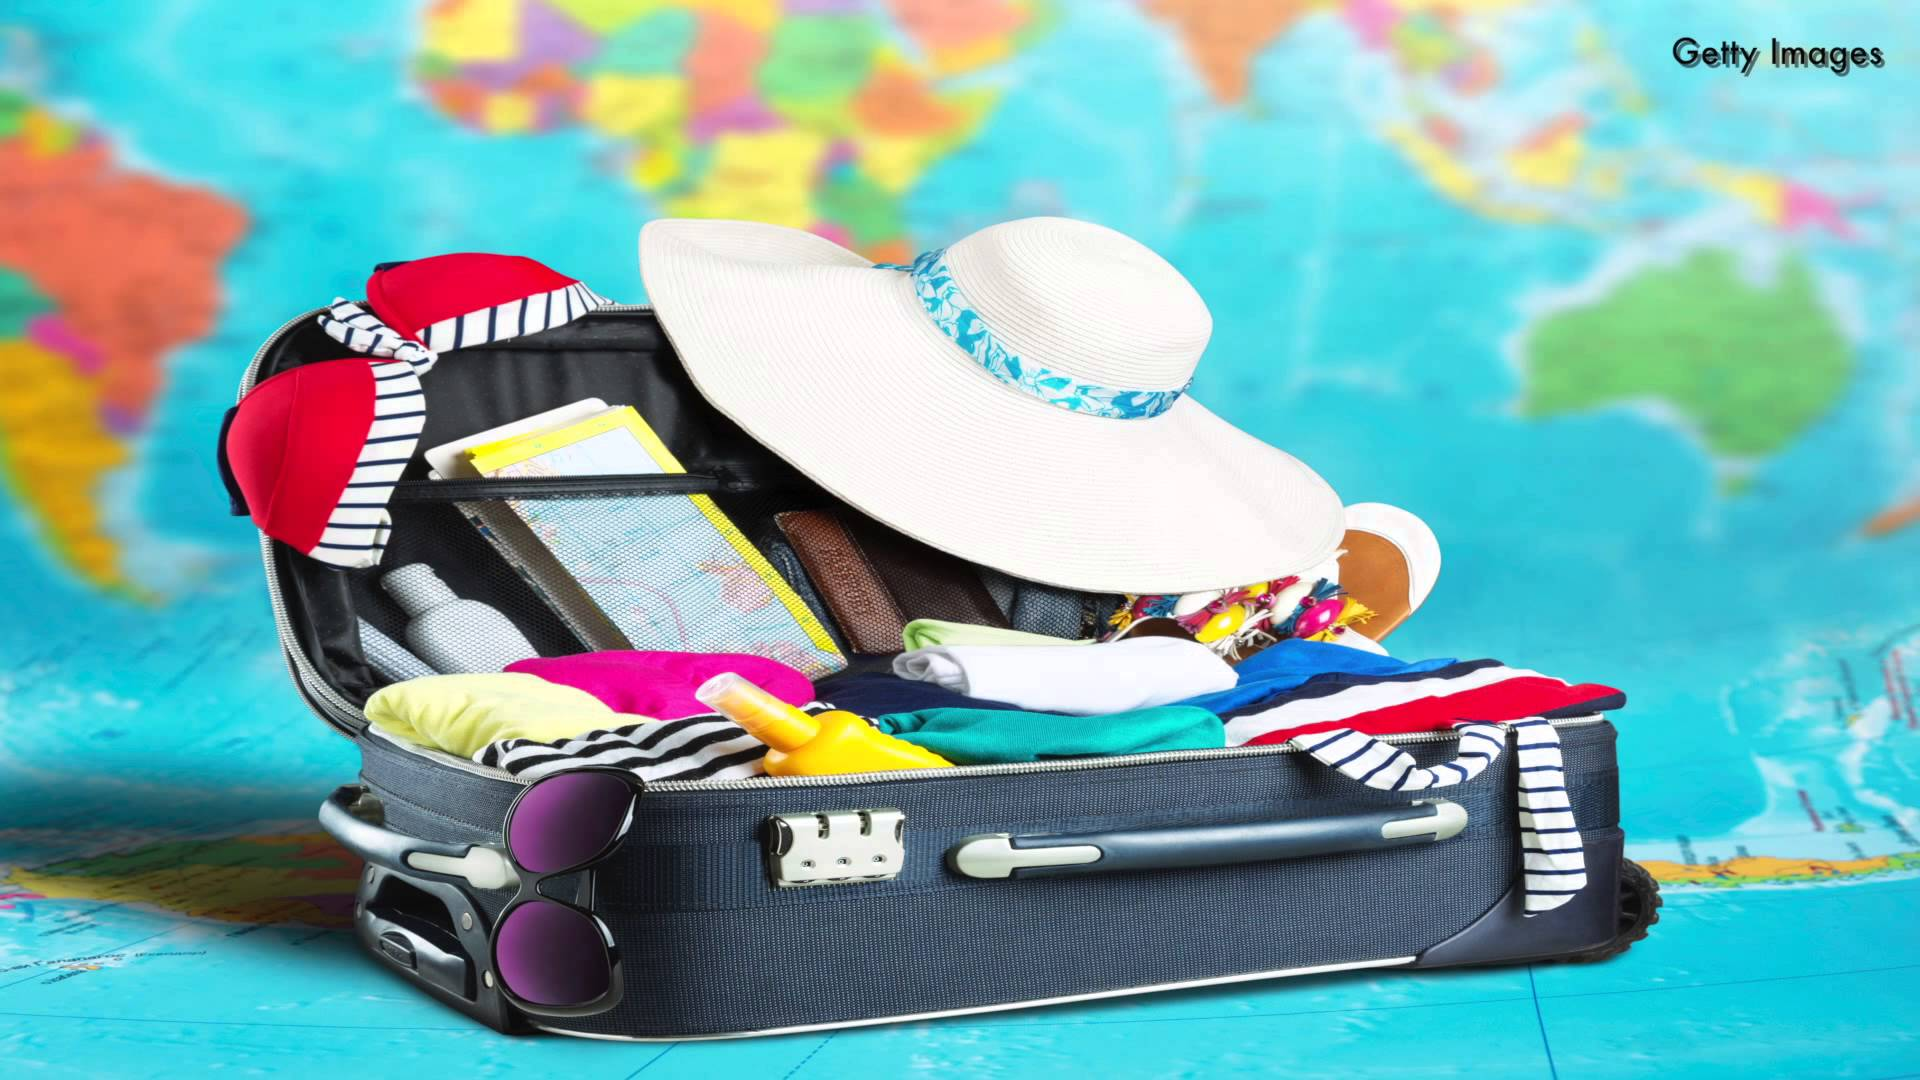 How do I keep my luggage from getting lost?